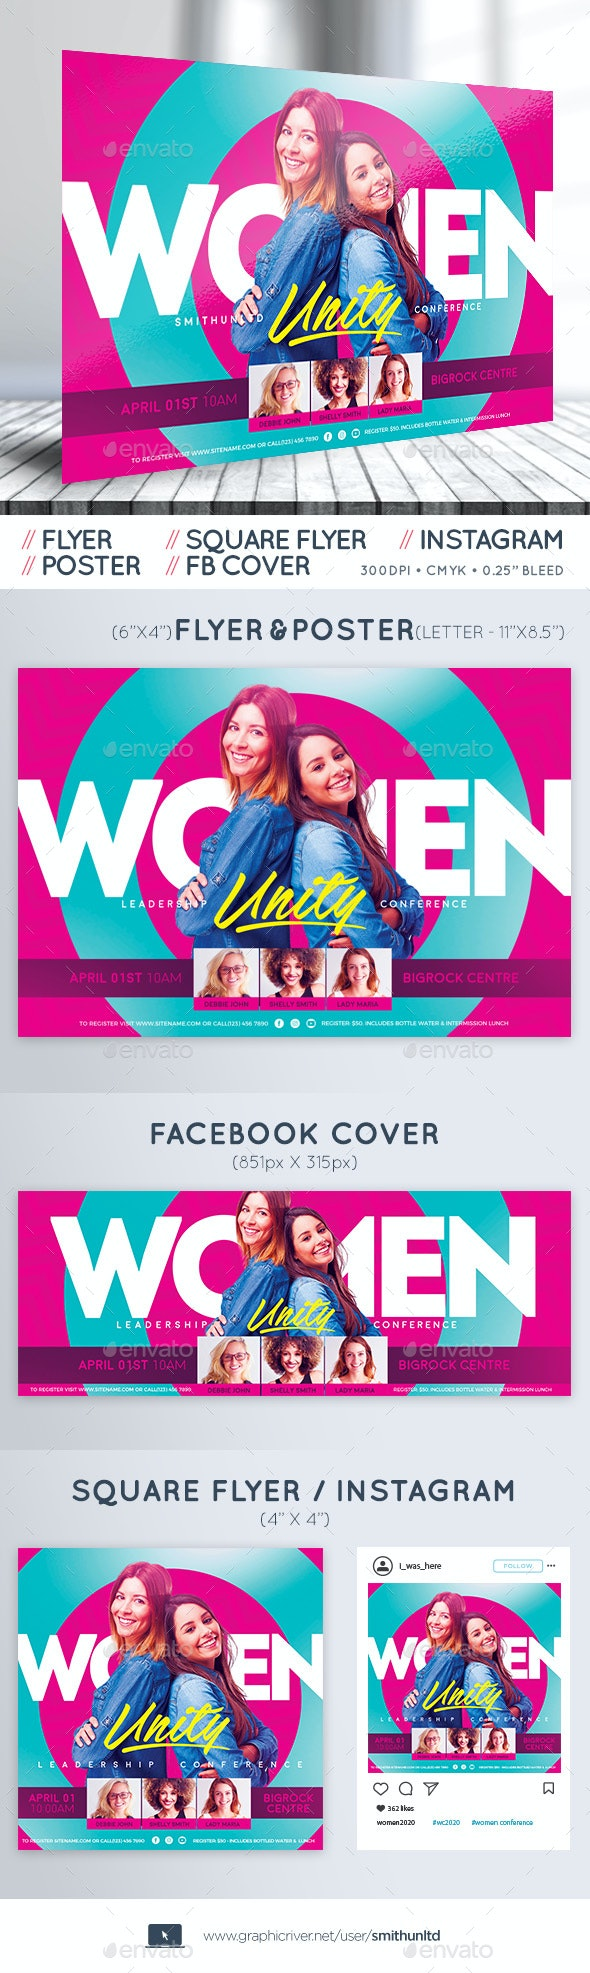 Women's Conference Flyer - Unity - Complete Set - Miscellaneous Events